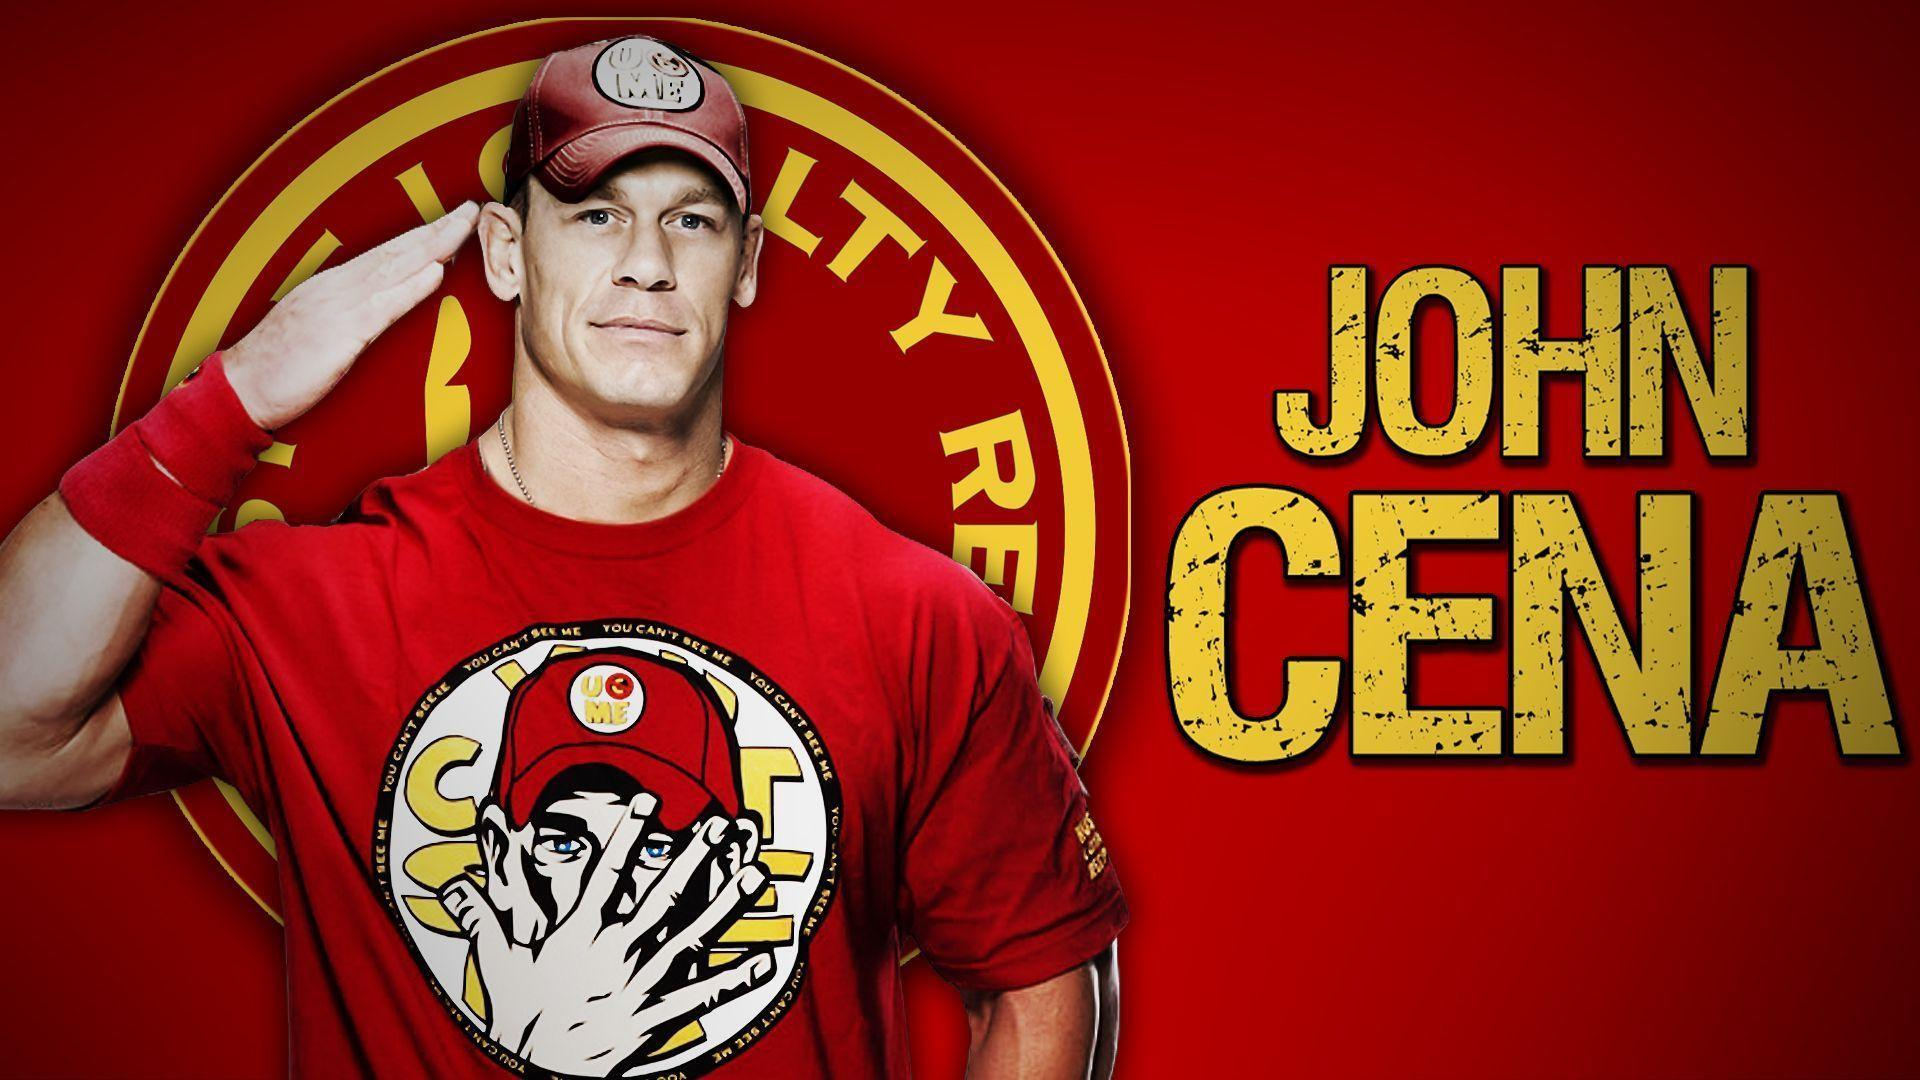 wwe john cena wallpapers 2015 hd wallpaper cave